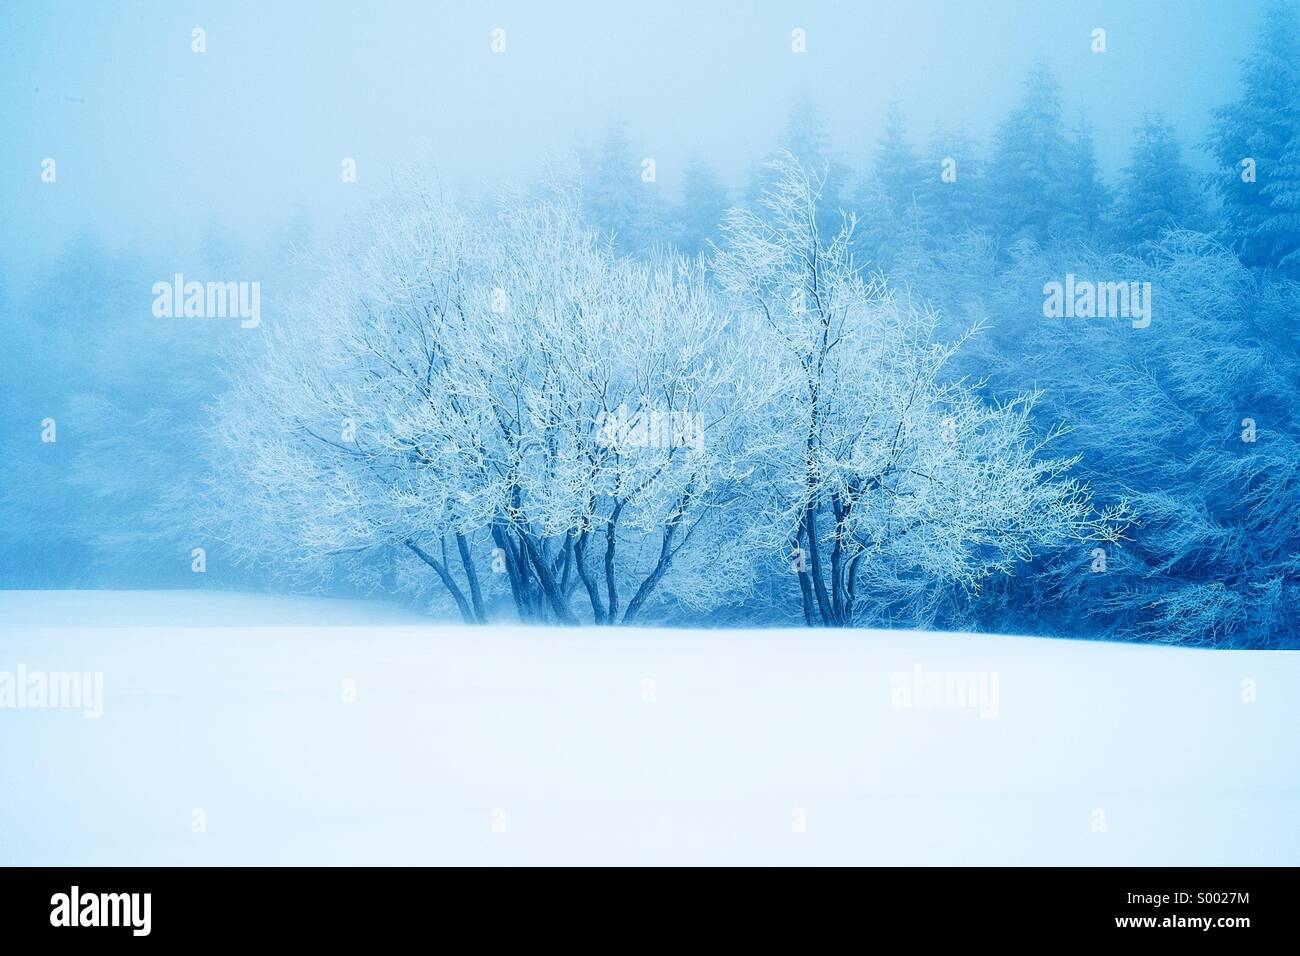 Snow - Stock Image